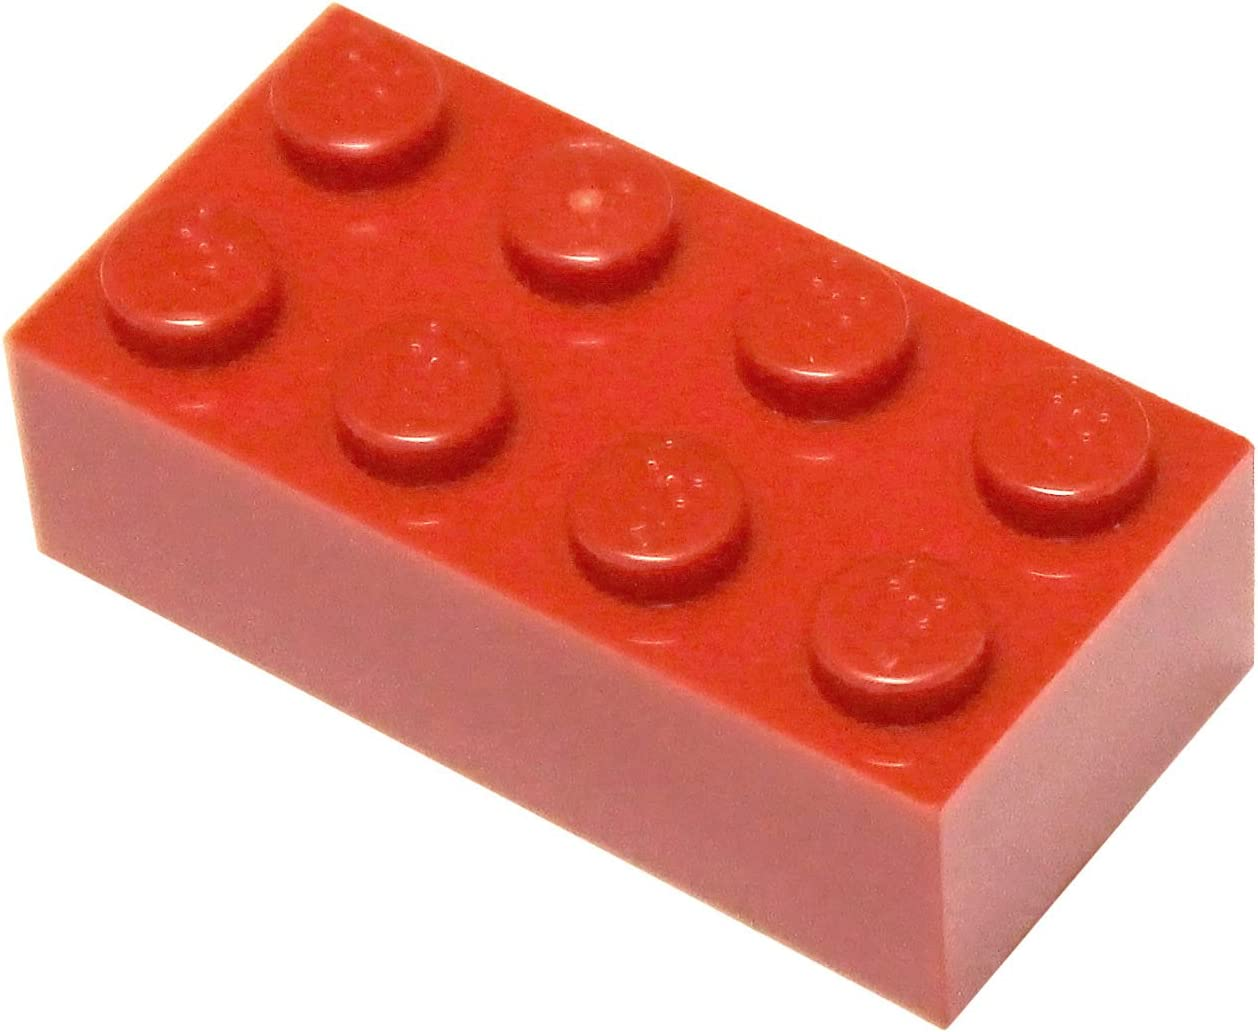 LEGO Parts and Pieces: Red (Bright Red) 2x4 Brick x20